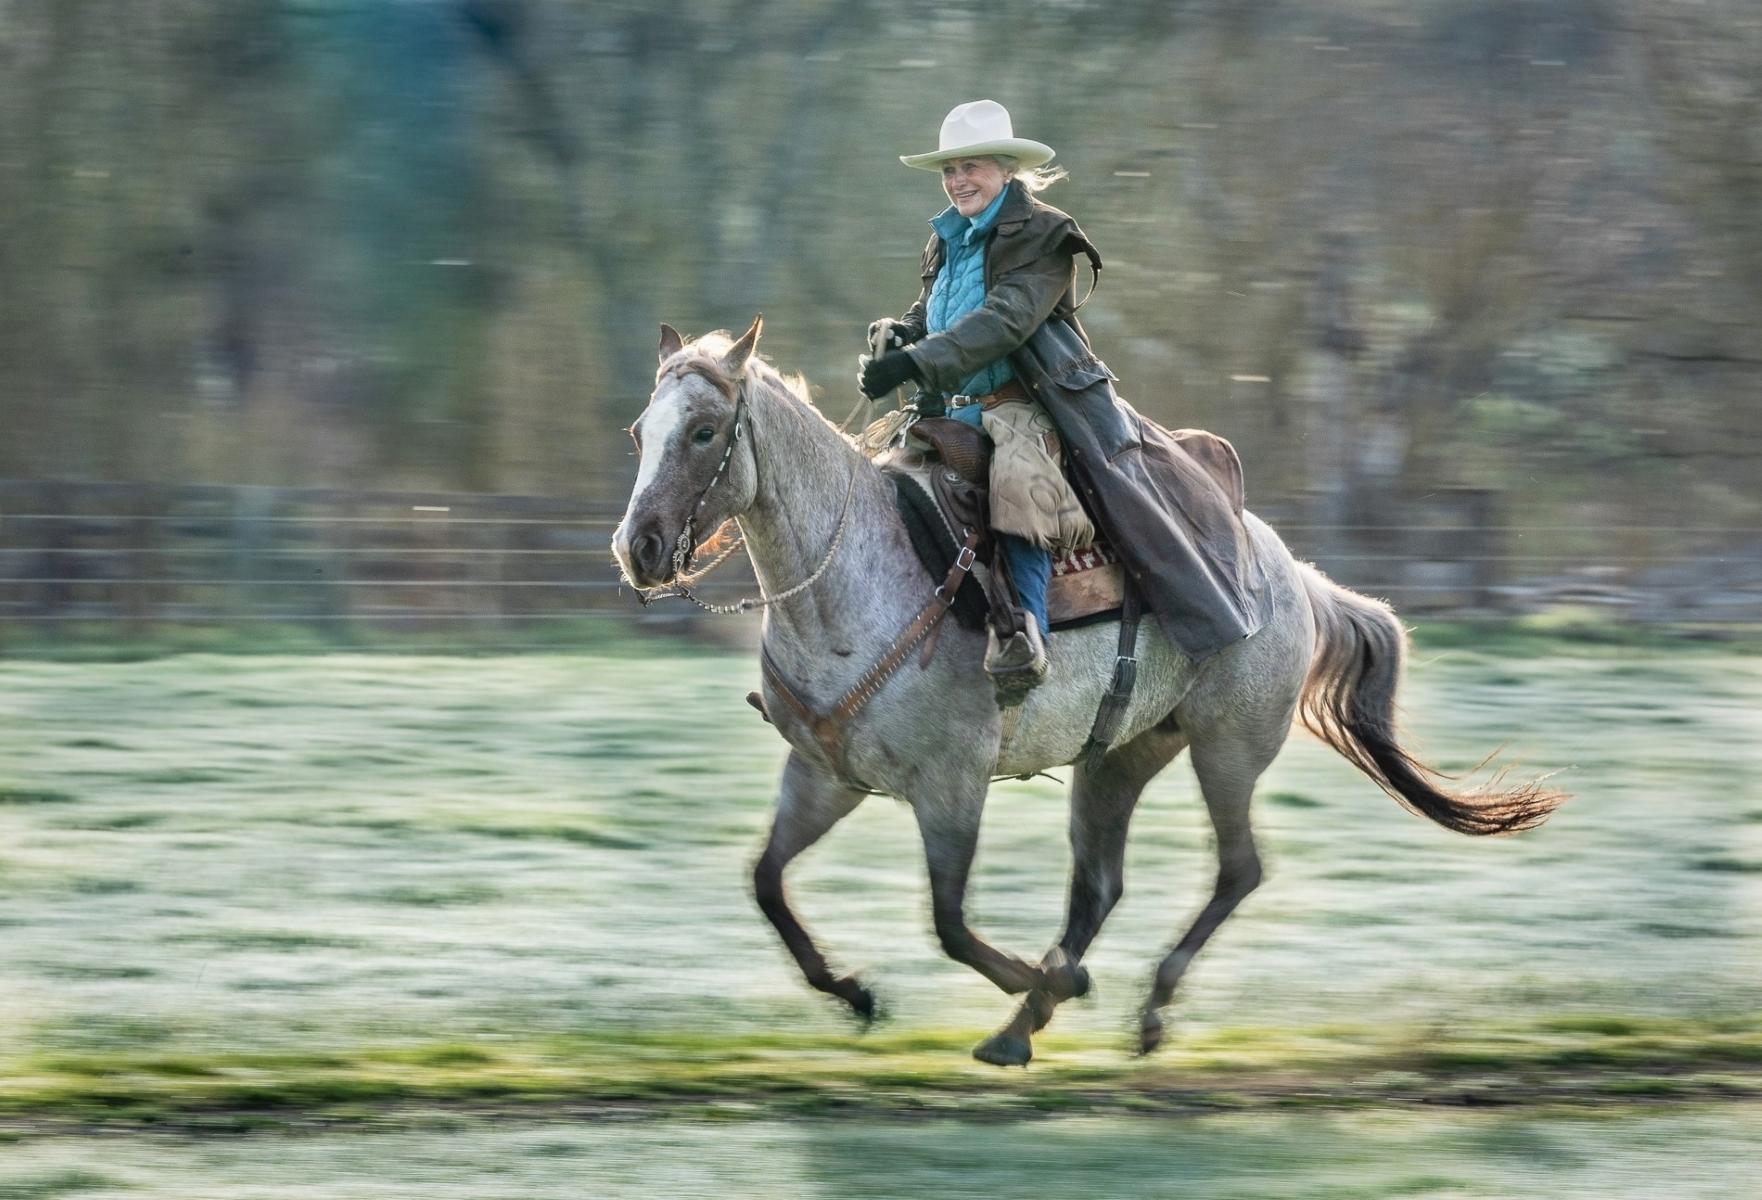 At-age-82-Audrey-OBrien-Griffin-is-still-a-riding-roping-horse-training-cowgirl-JI-1-Place-by-Jennifer-Marano-SR